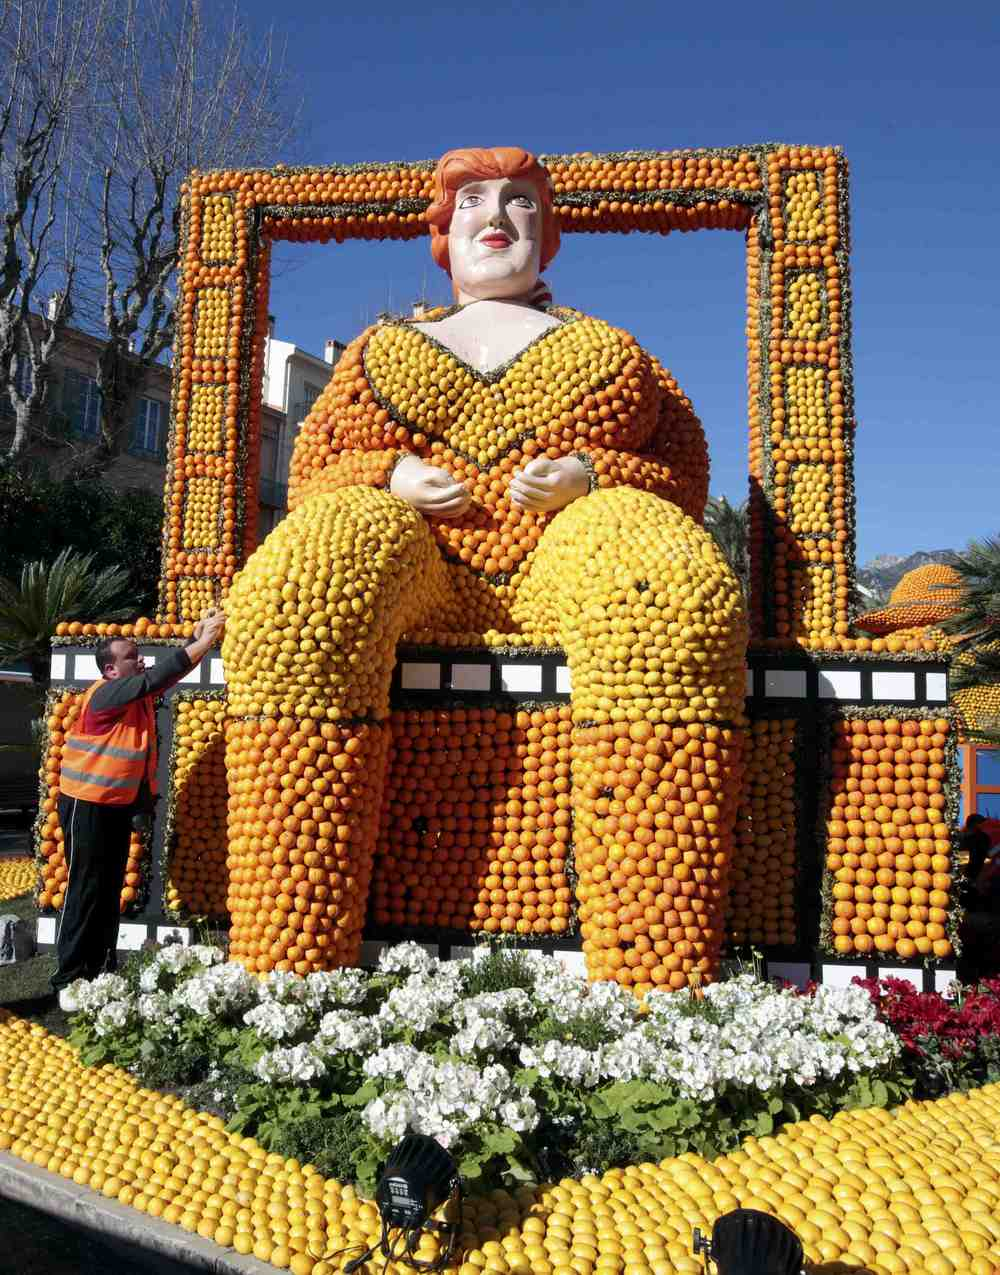 A worker puts the final touch to a replica of a giant woman made with lemons and oranges which shows a scene of the movie